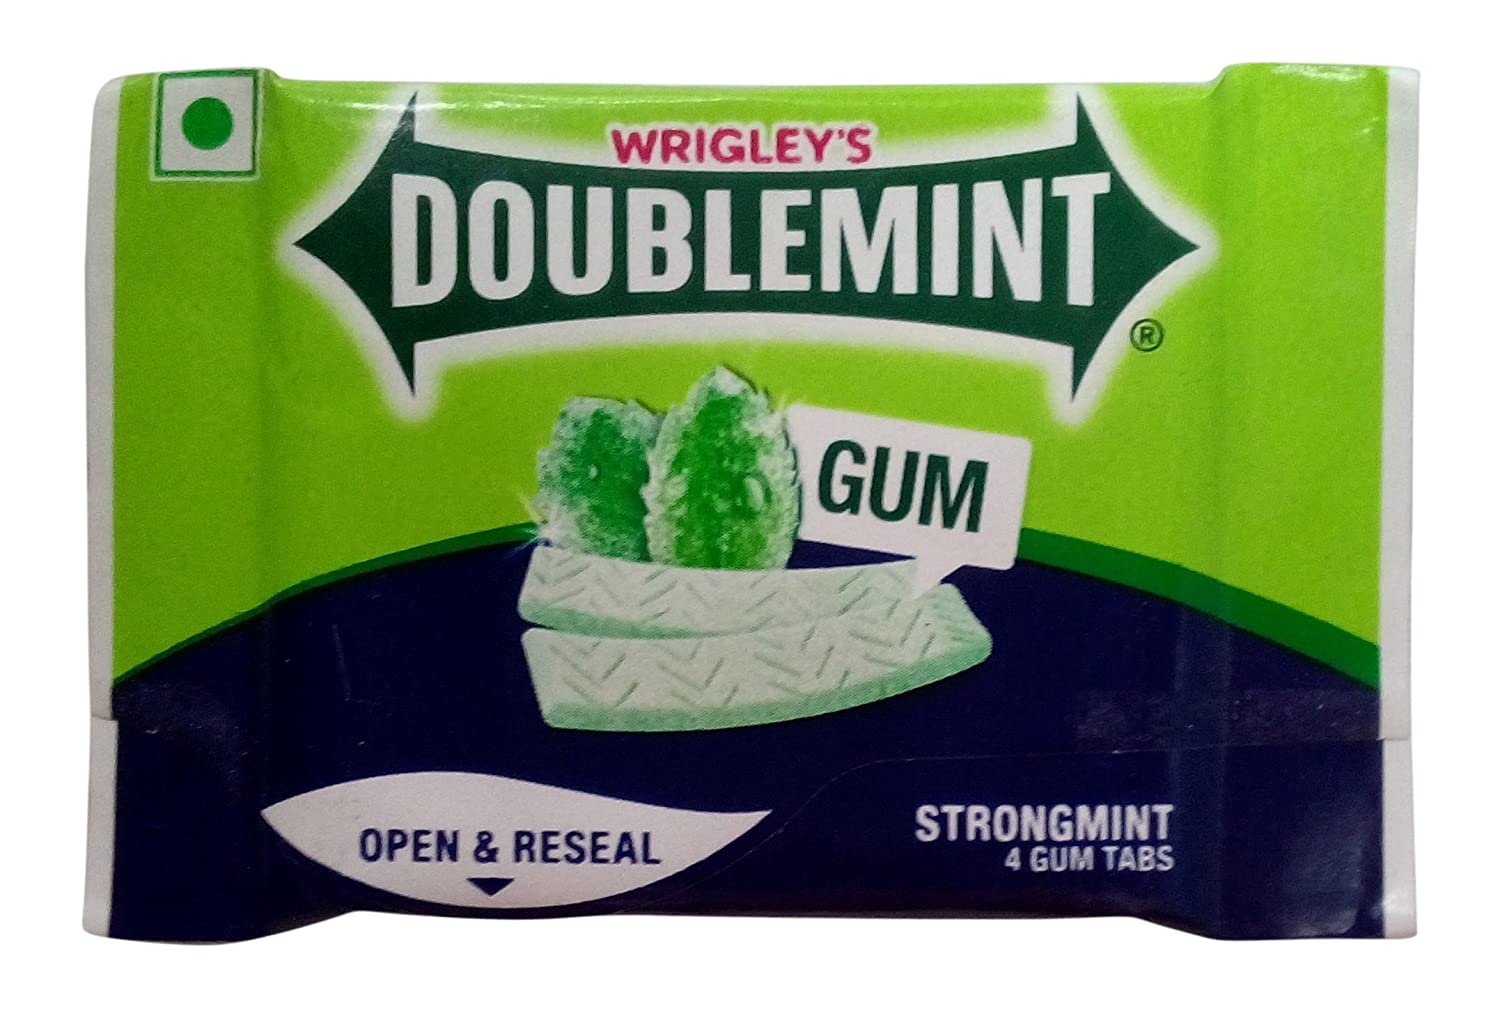 Wrigley's Doublemint Gum - Strong Mint